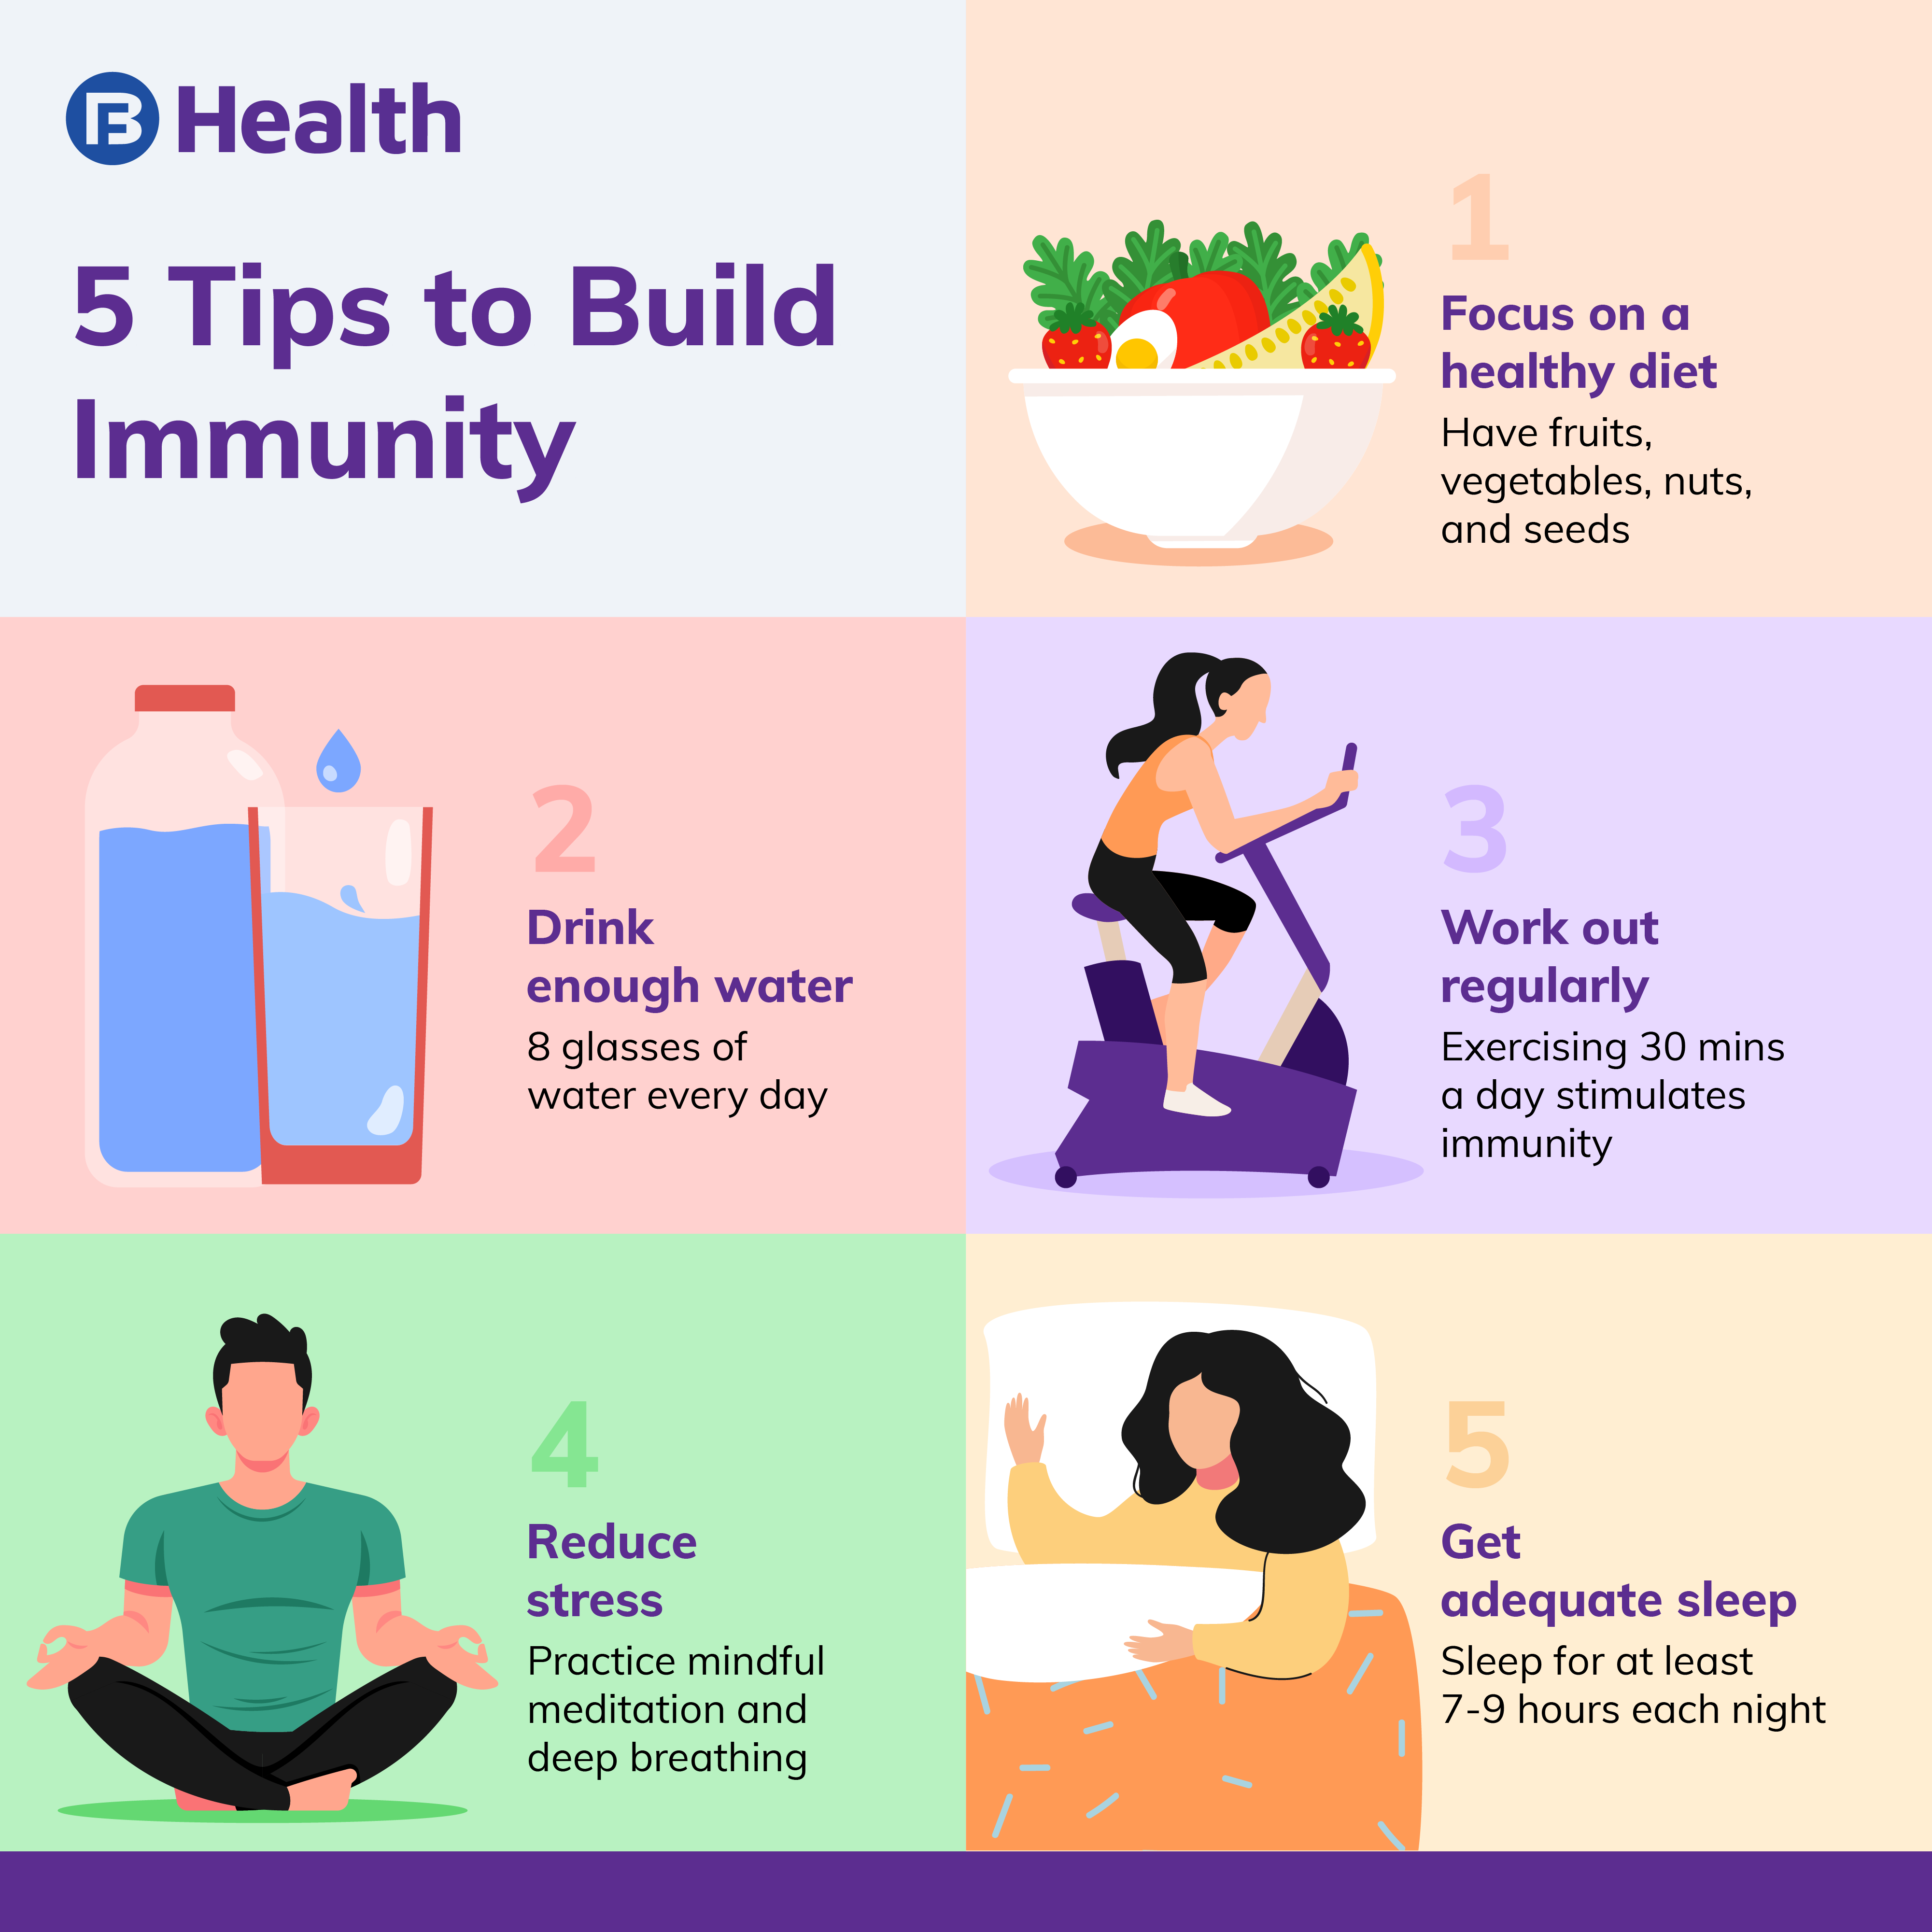 Tips to build immunity